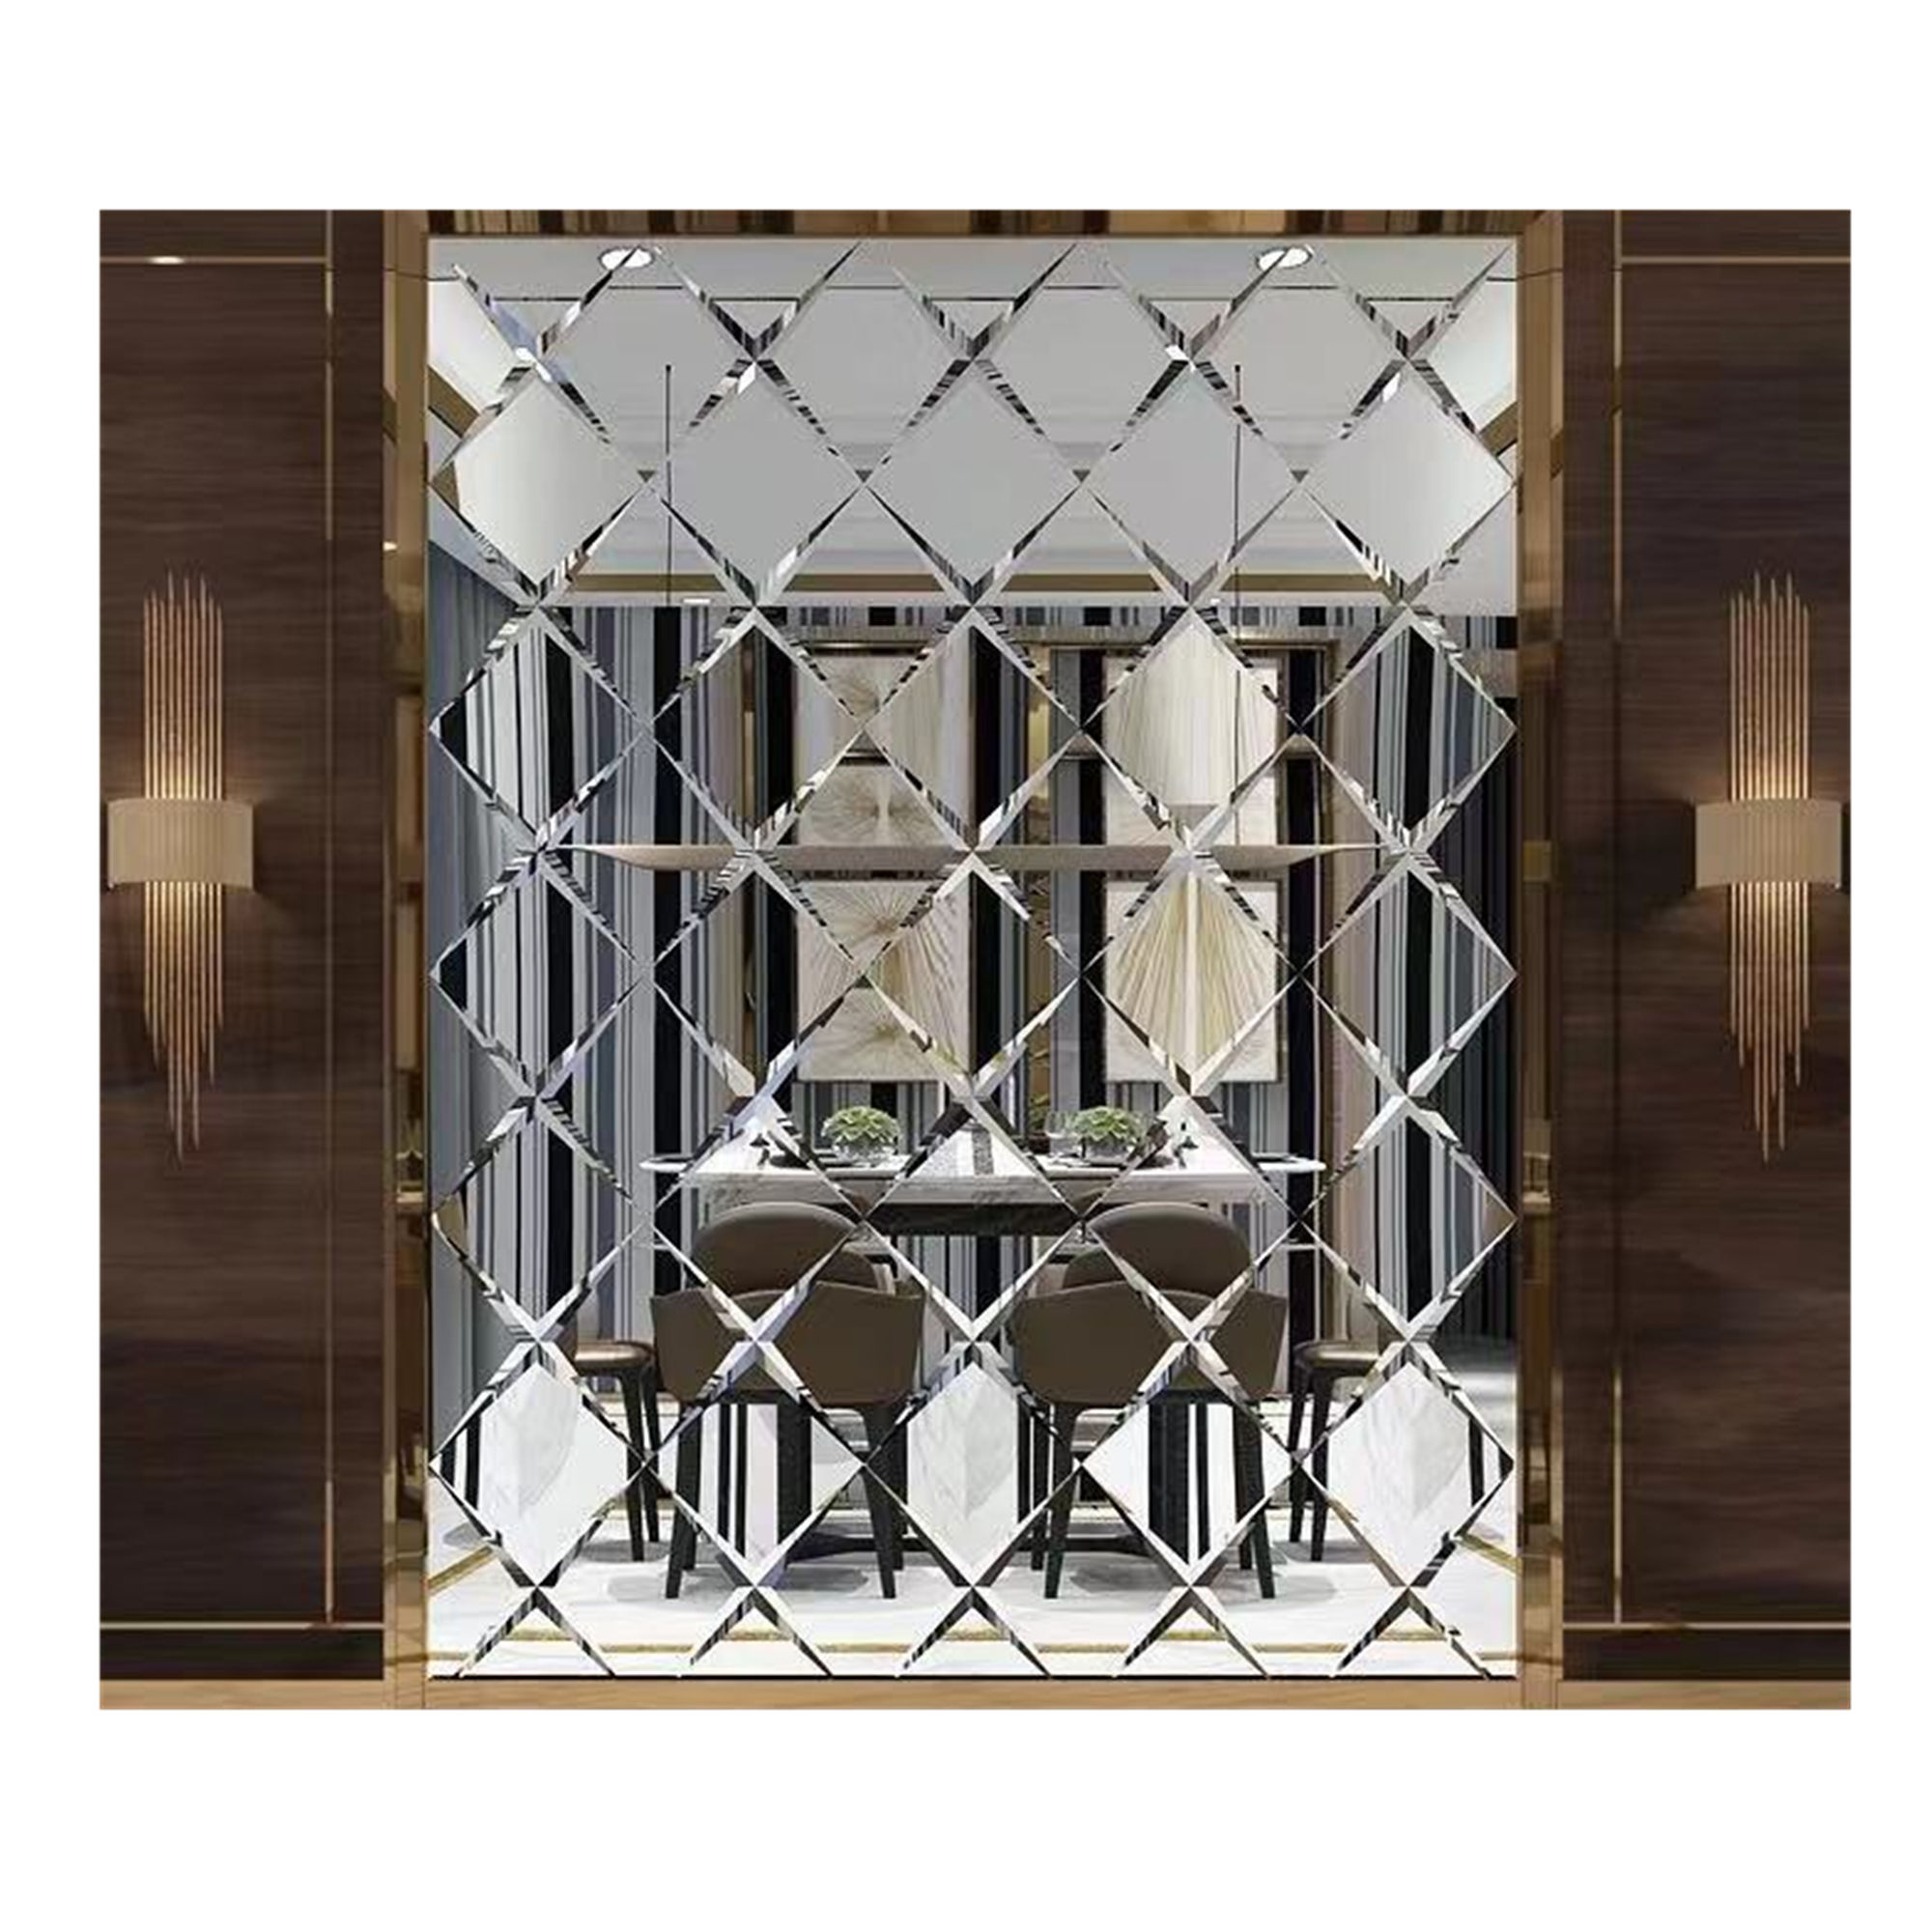 Decorative Tile Mirrors Mirror Wall Tiles Sell 4mm Silver Wall Mirror Decorative Mirror Wall Tiles